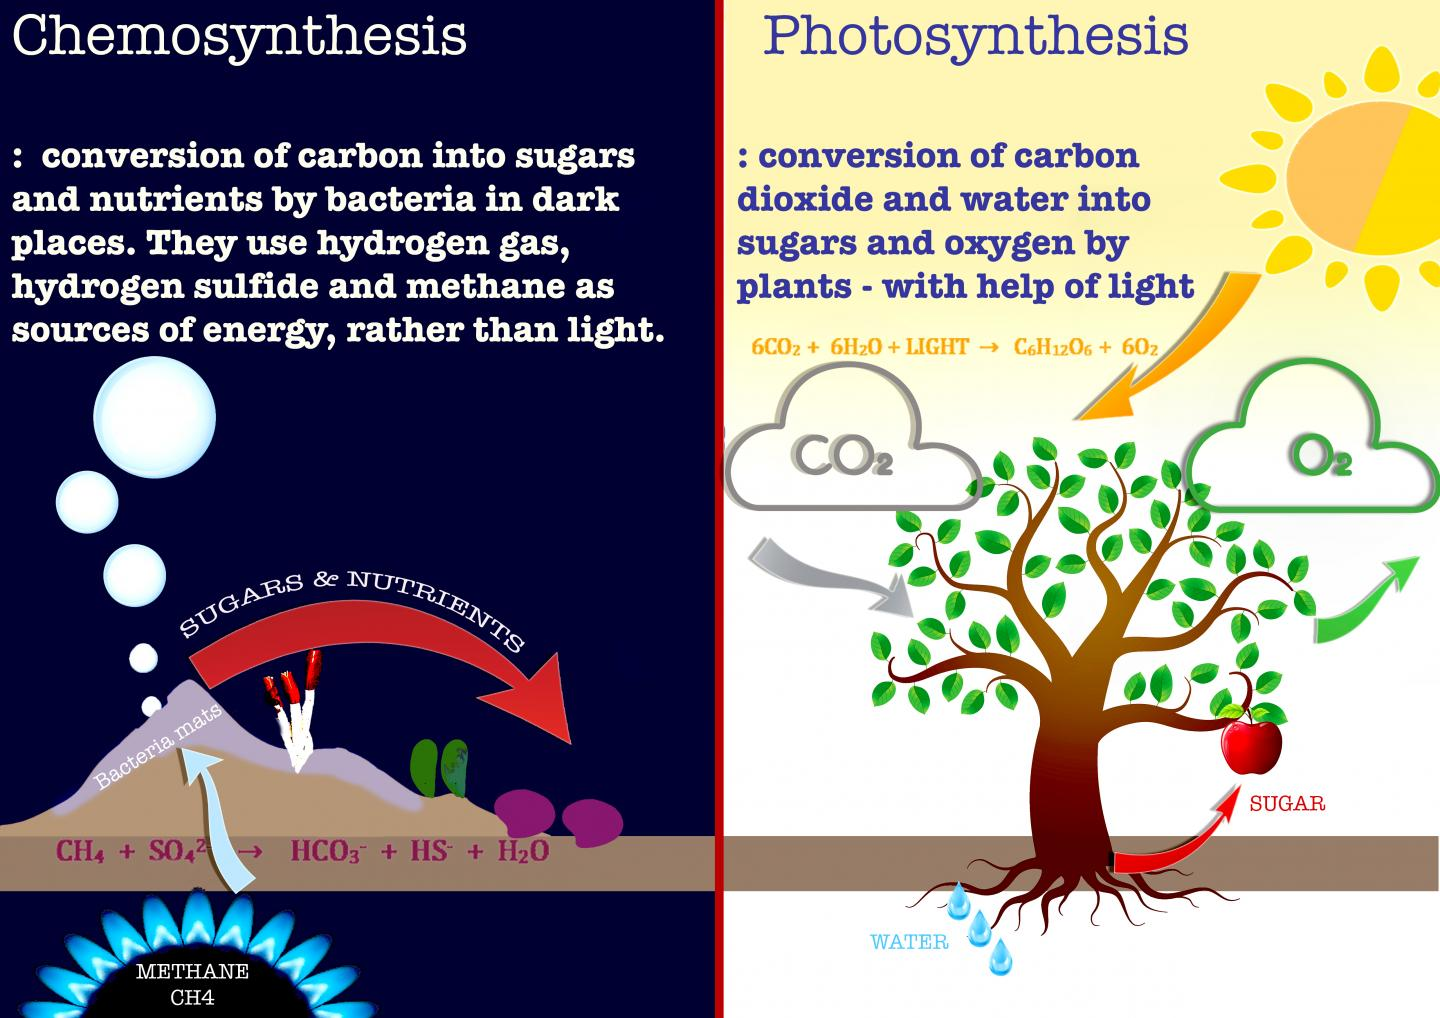 does chemosynthesis produce oxygen